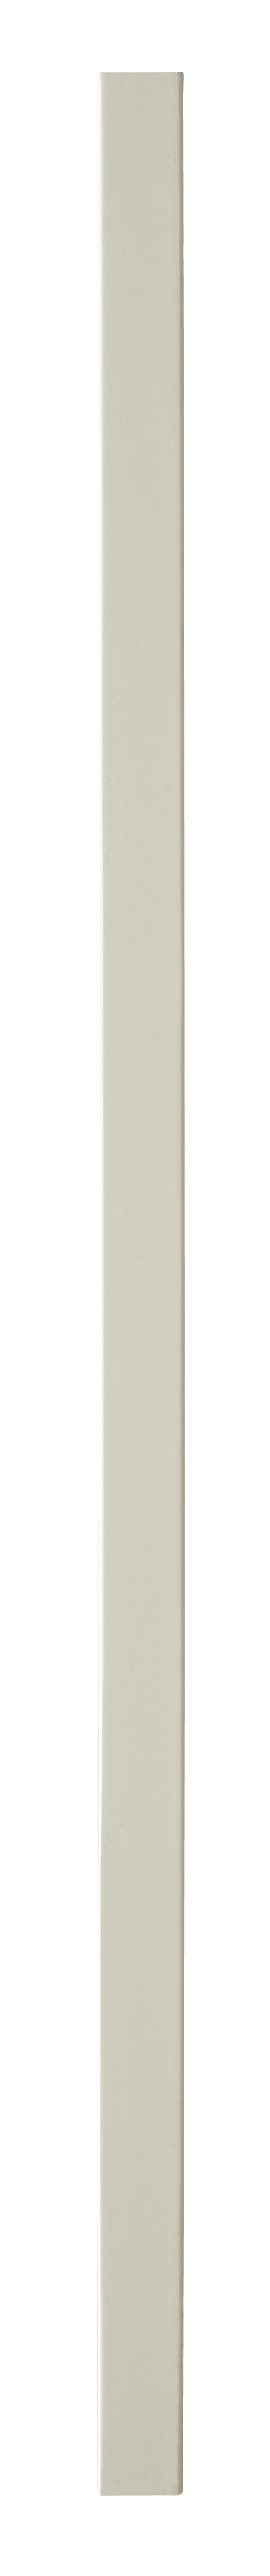 1 White Plain Baluster 900 32